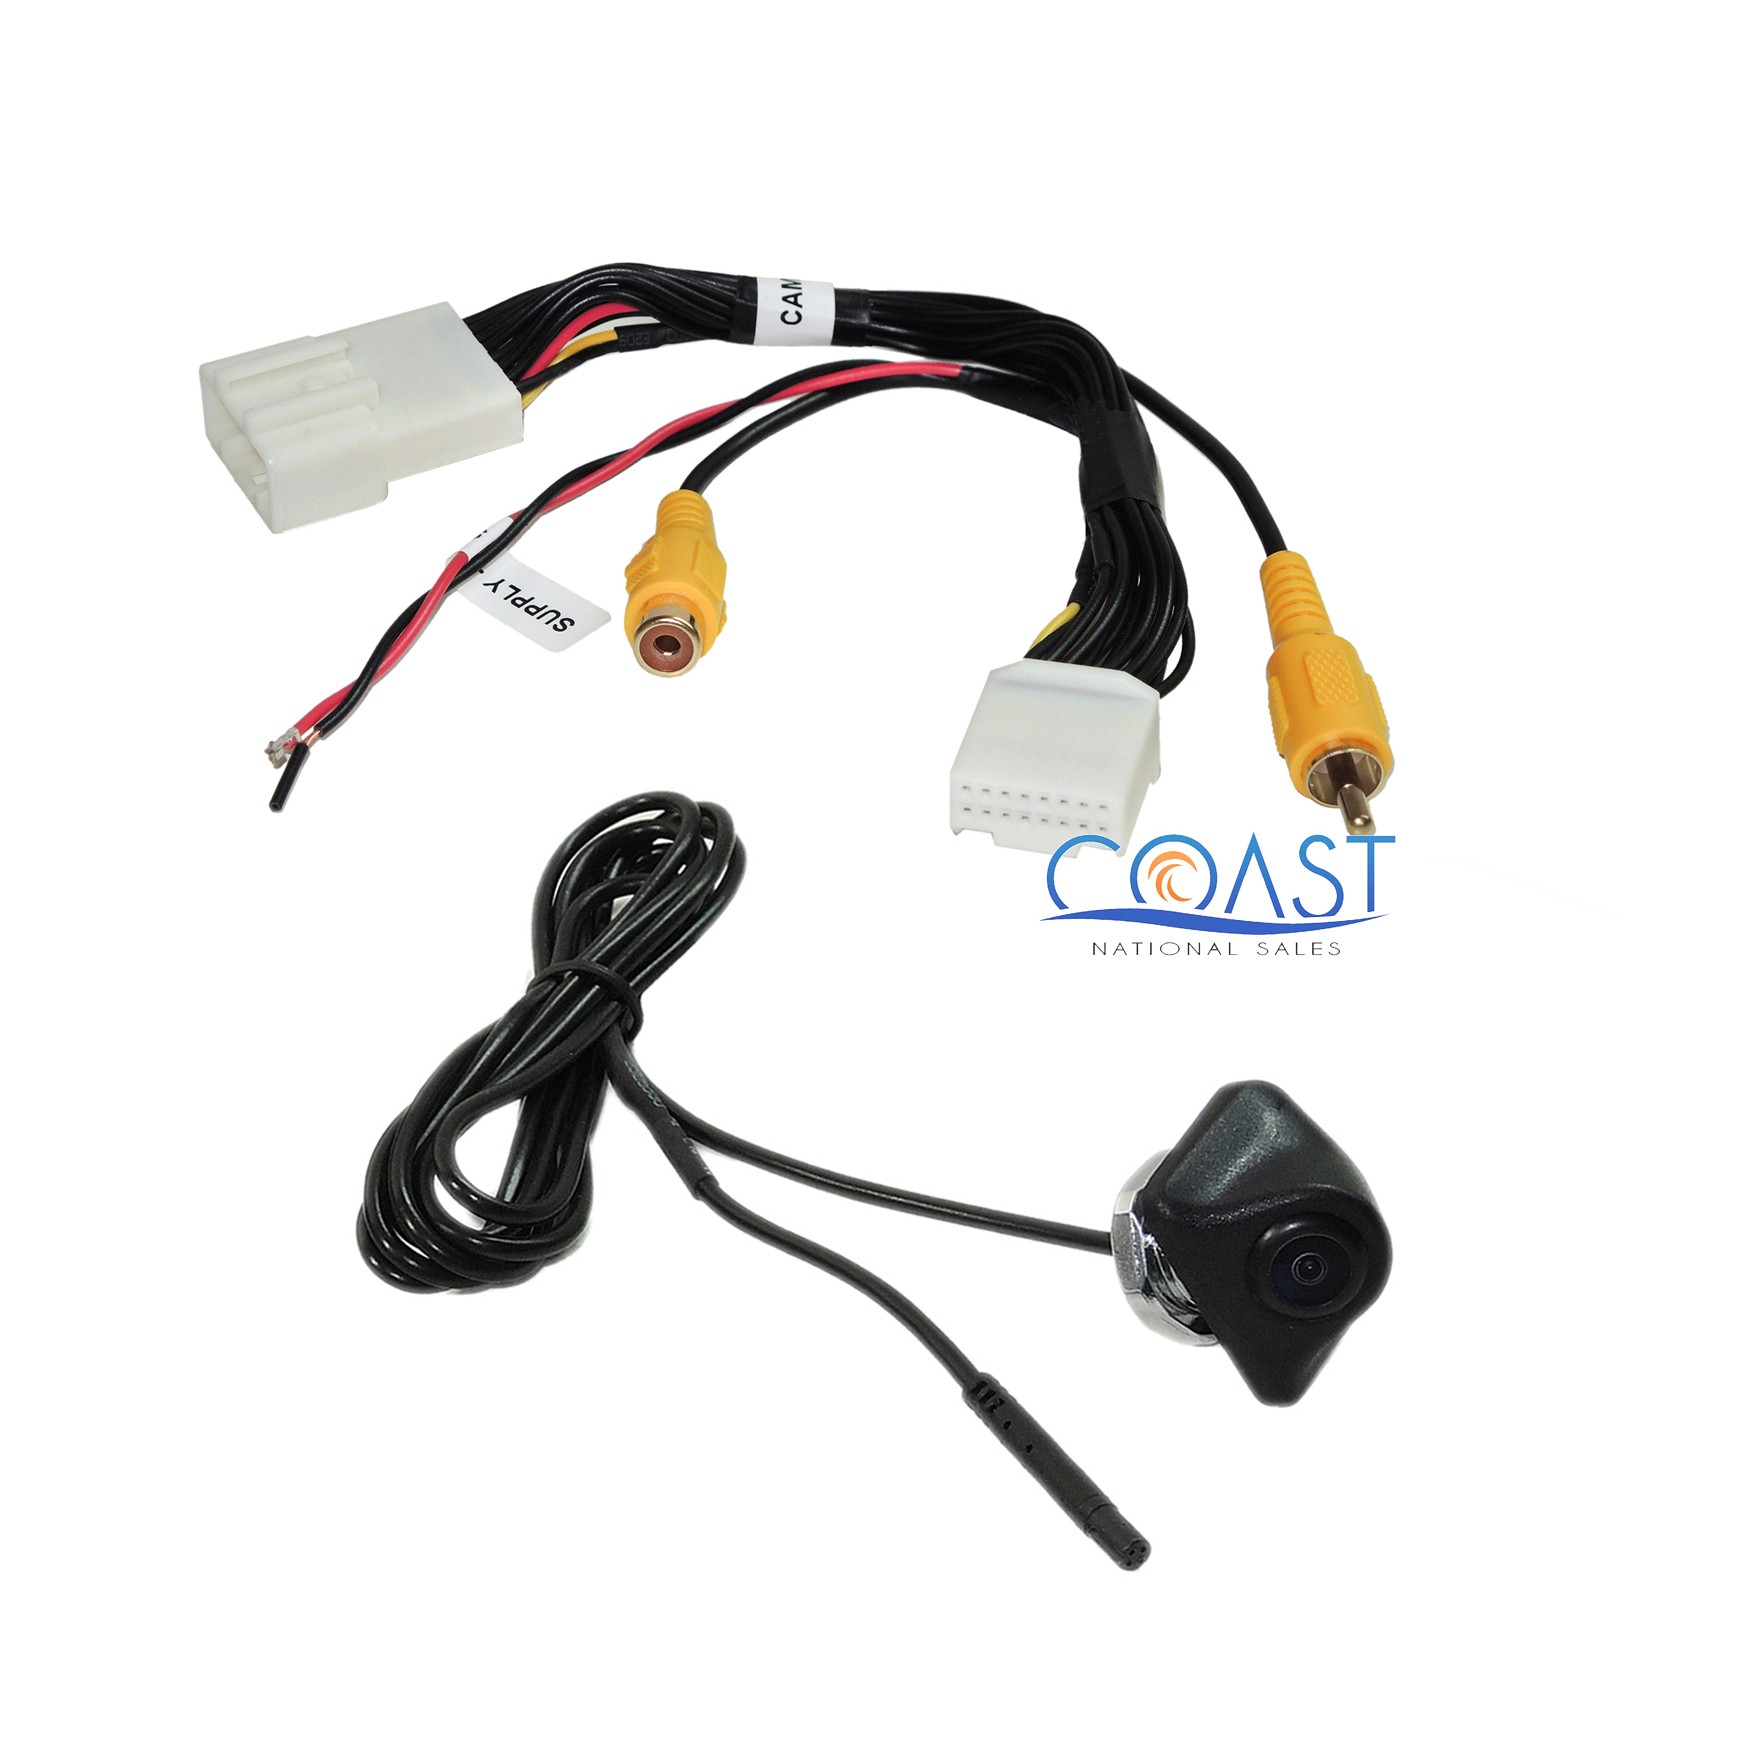 Toyota reverse camera wiring diagram unique wiring diagram image car reverse backup camera t harness rear view for subaru main image toyota rav4 wiring cheapraybanclubmaster Image collections